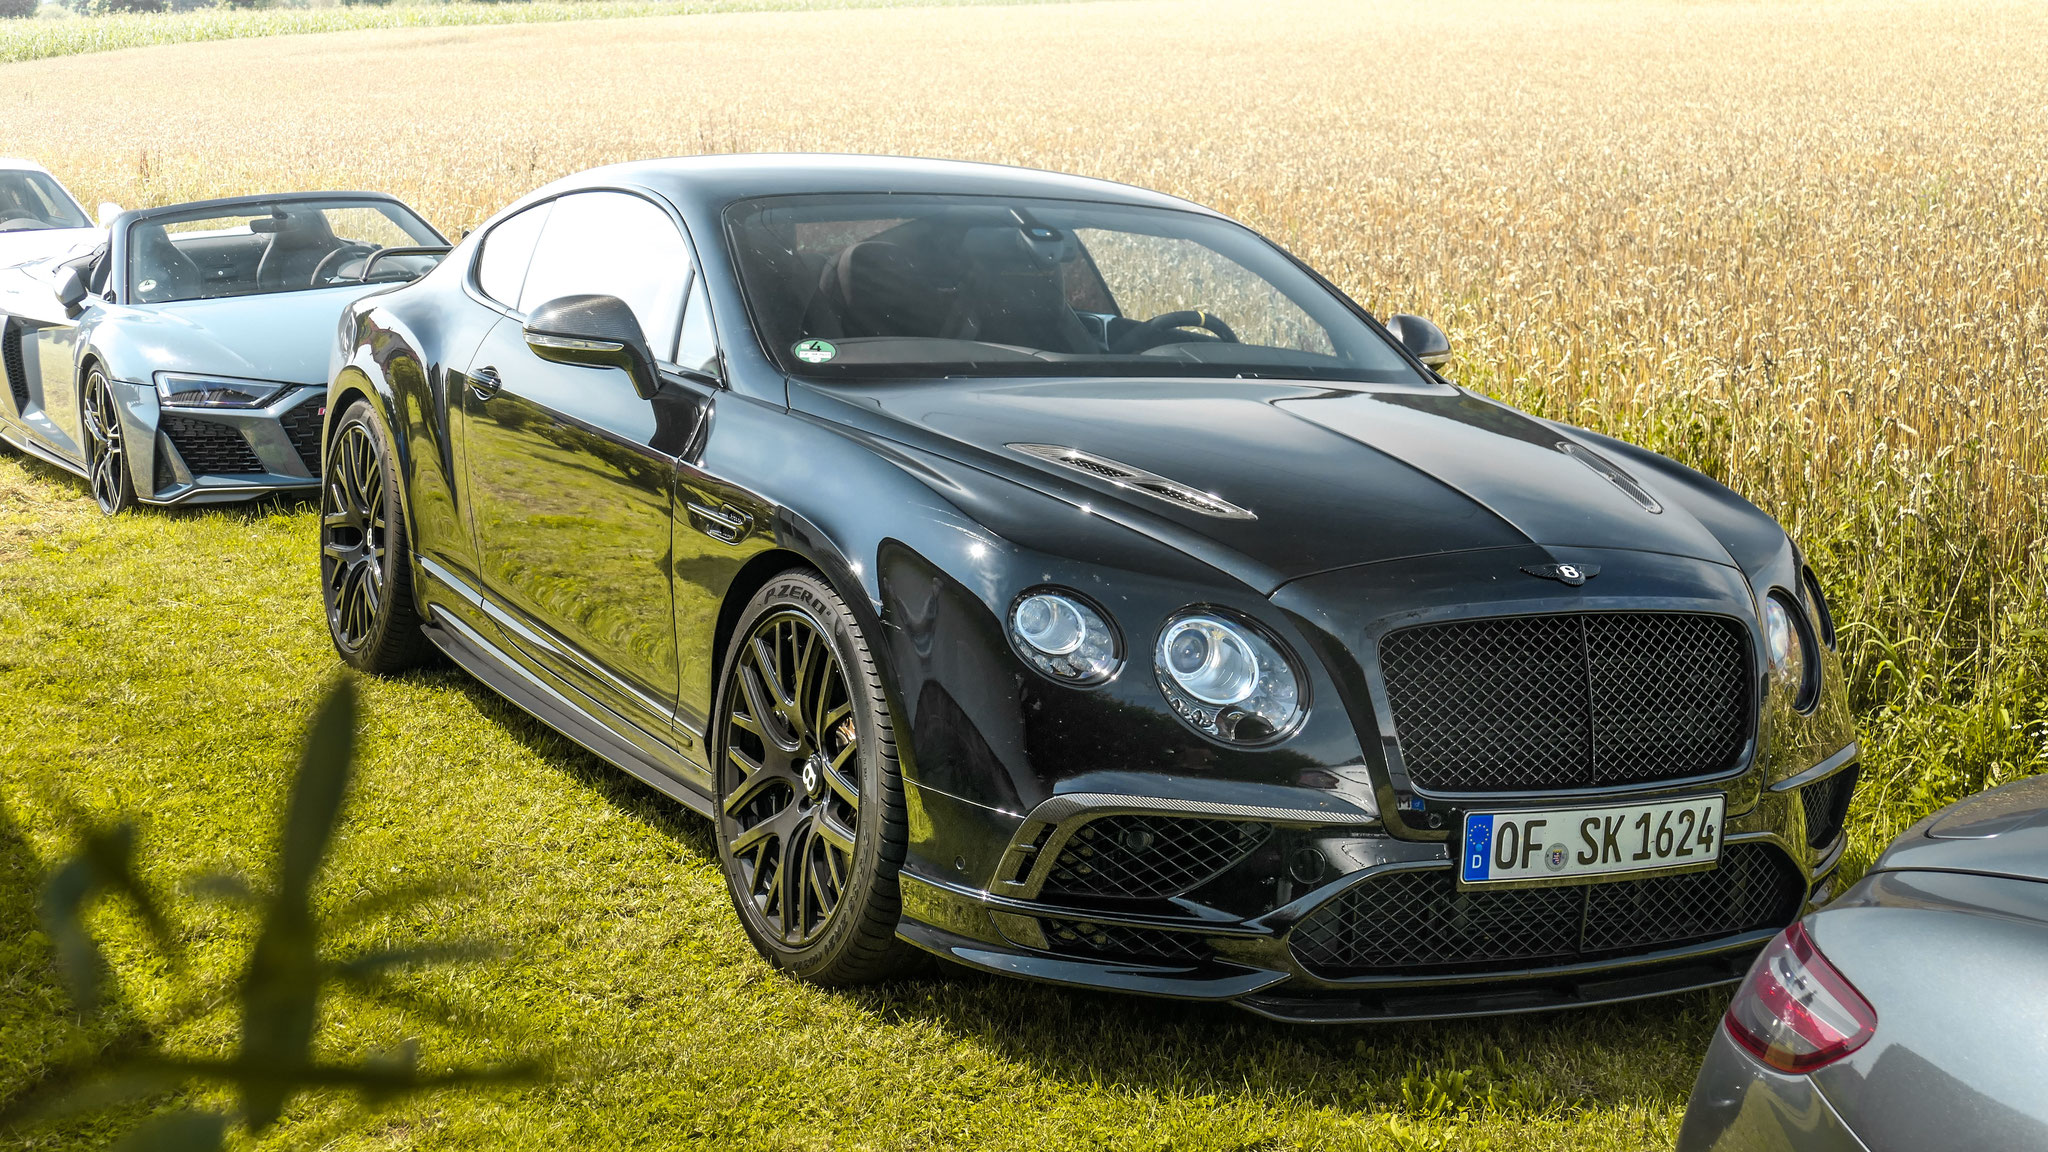 Bentley Continental GTC Supersports - OF-SK-1624